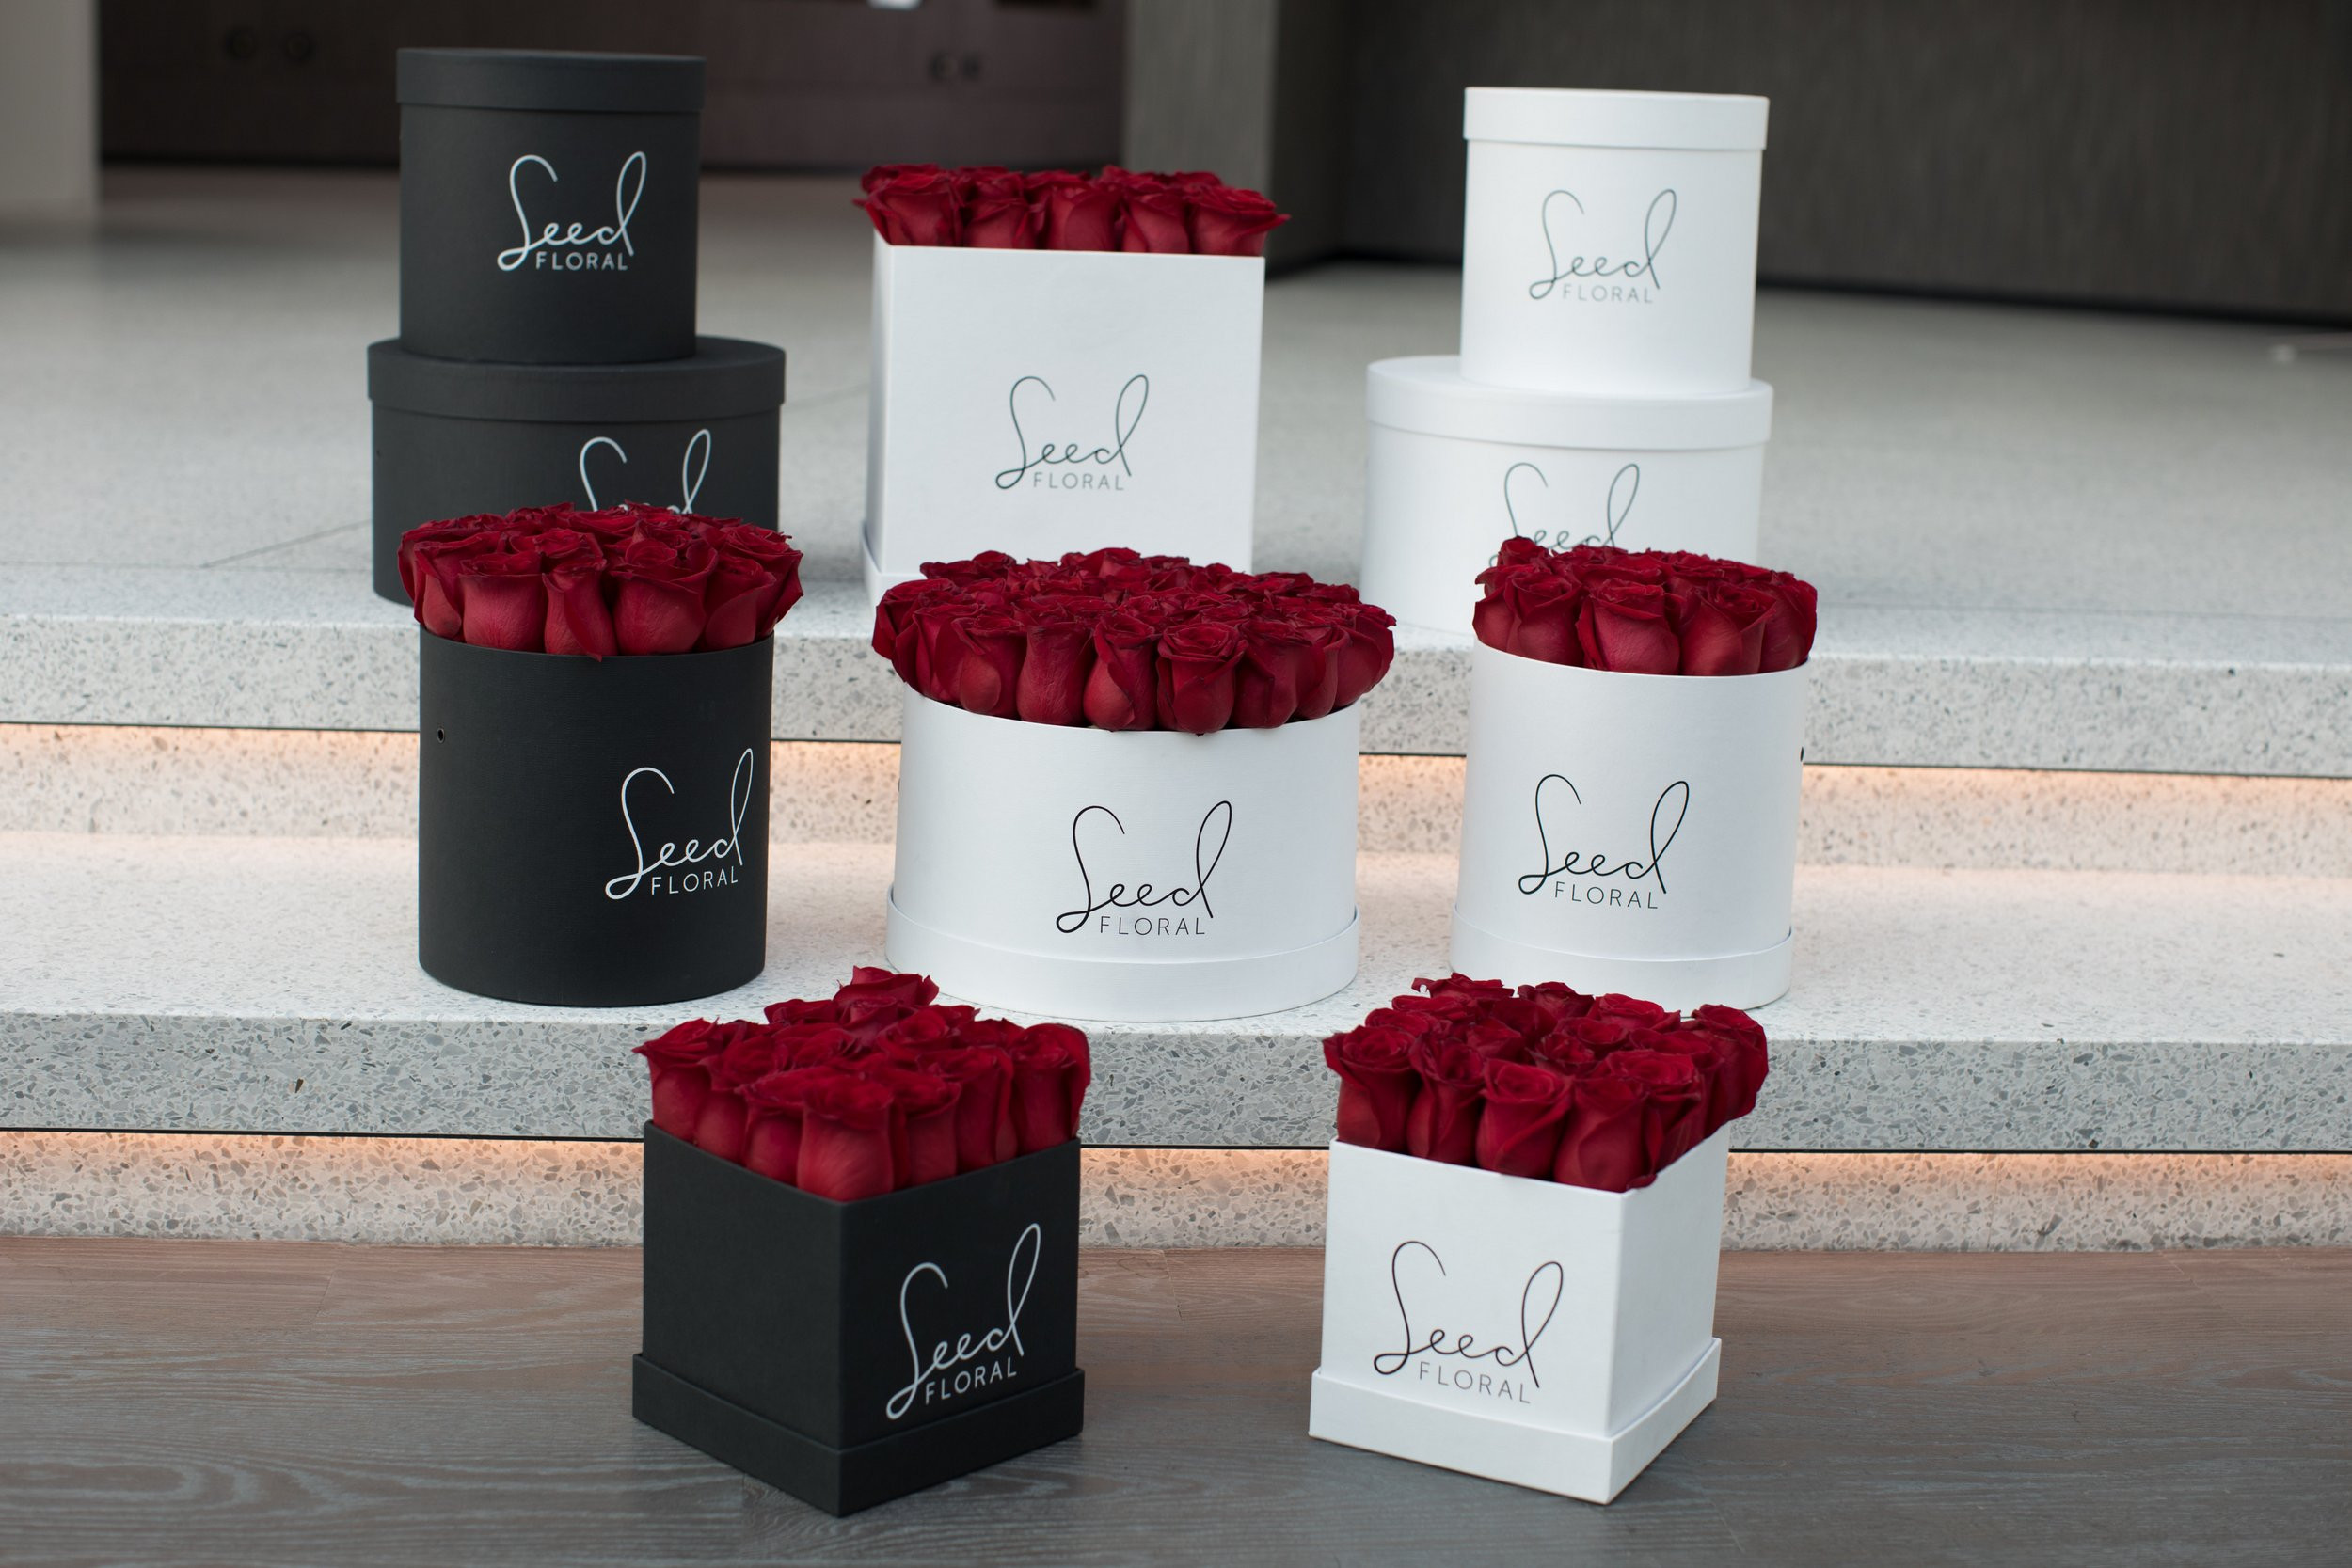 wholesale glass vases in downtown los angeles of great valentines day date ideas for los angeles couples a cbs los for credit seed floral